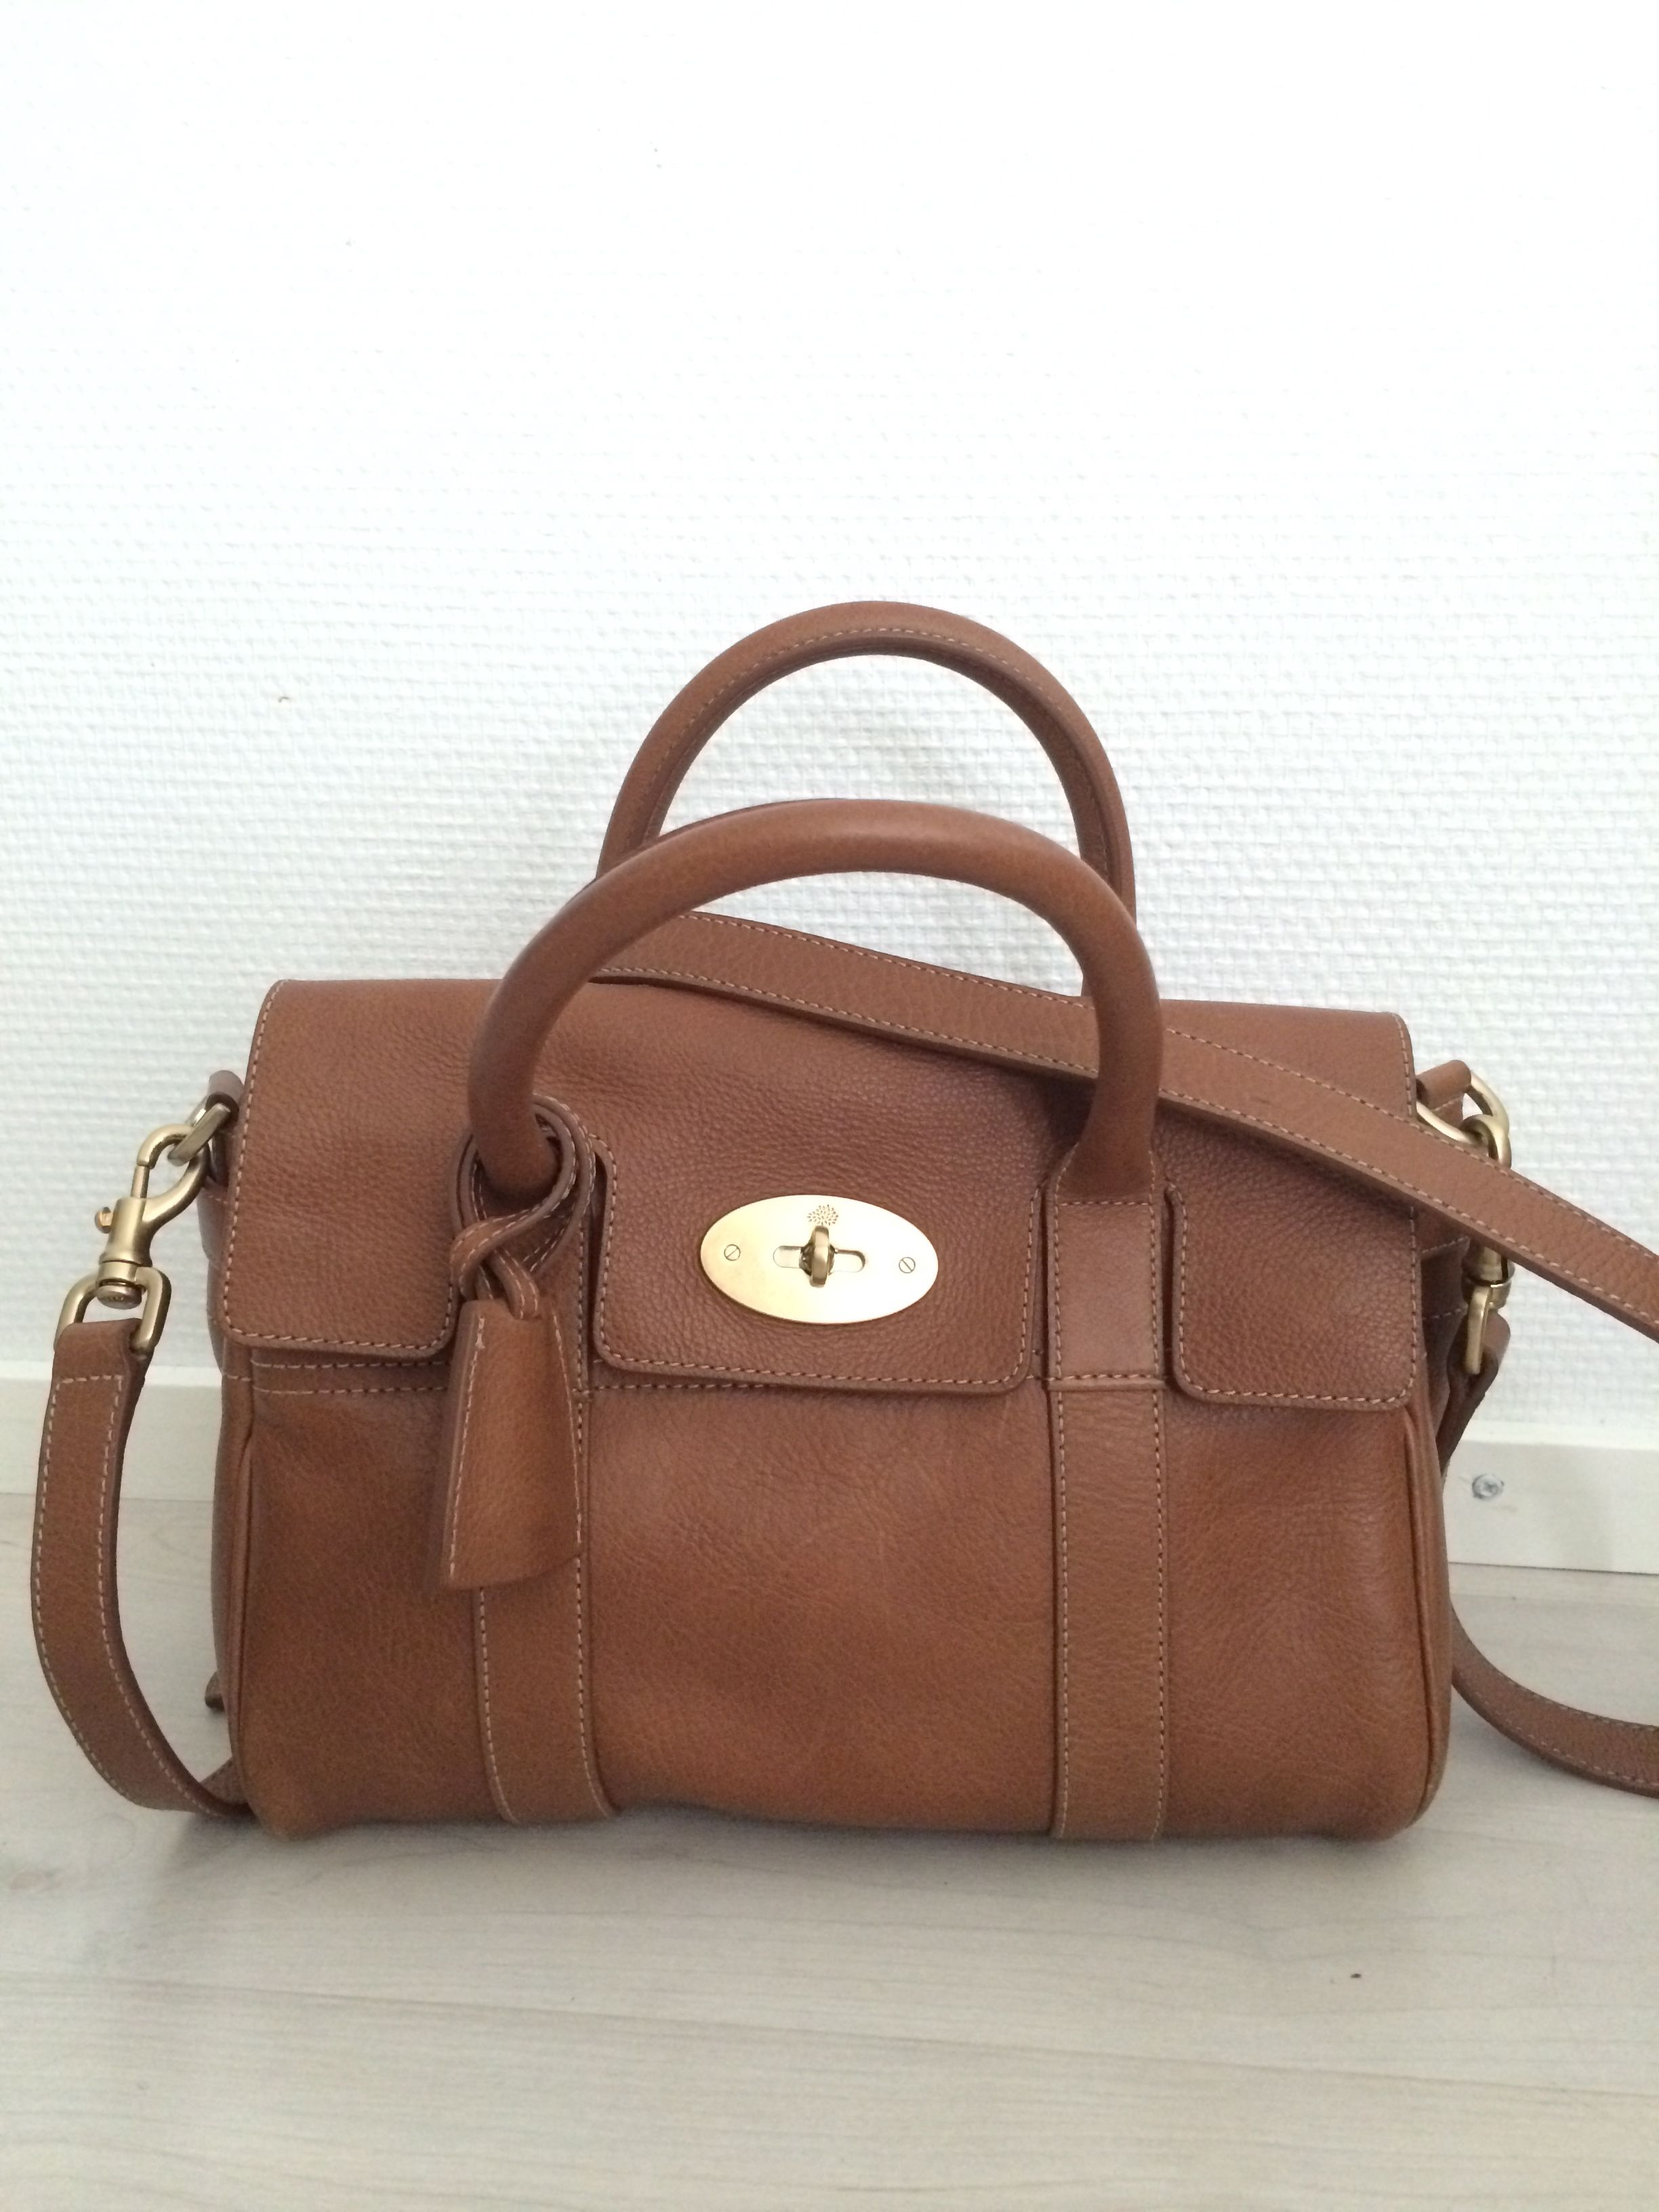 1842a3eb7b Own Mulberry small bayswater satchel